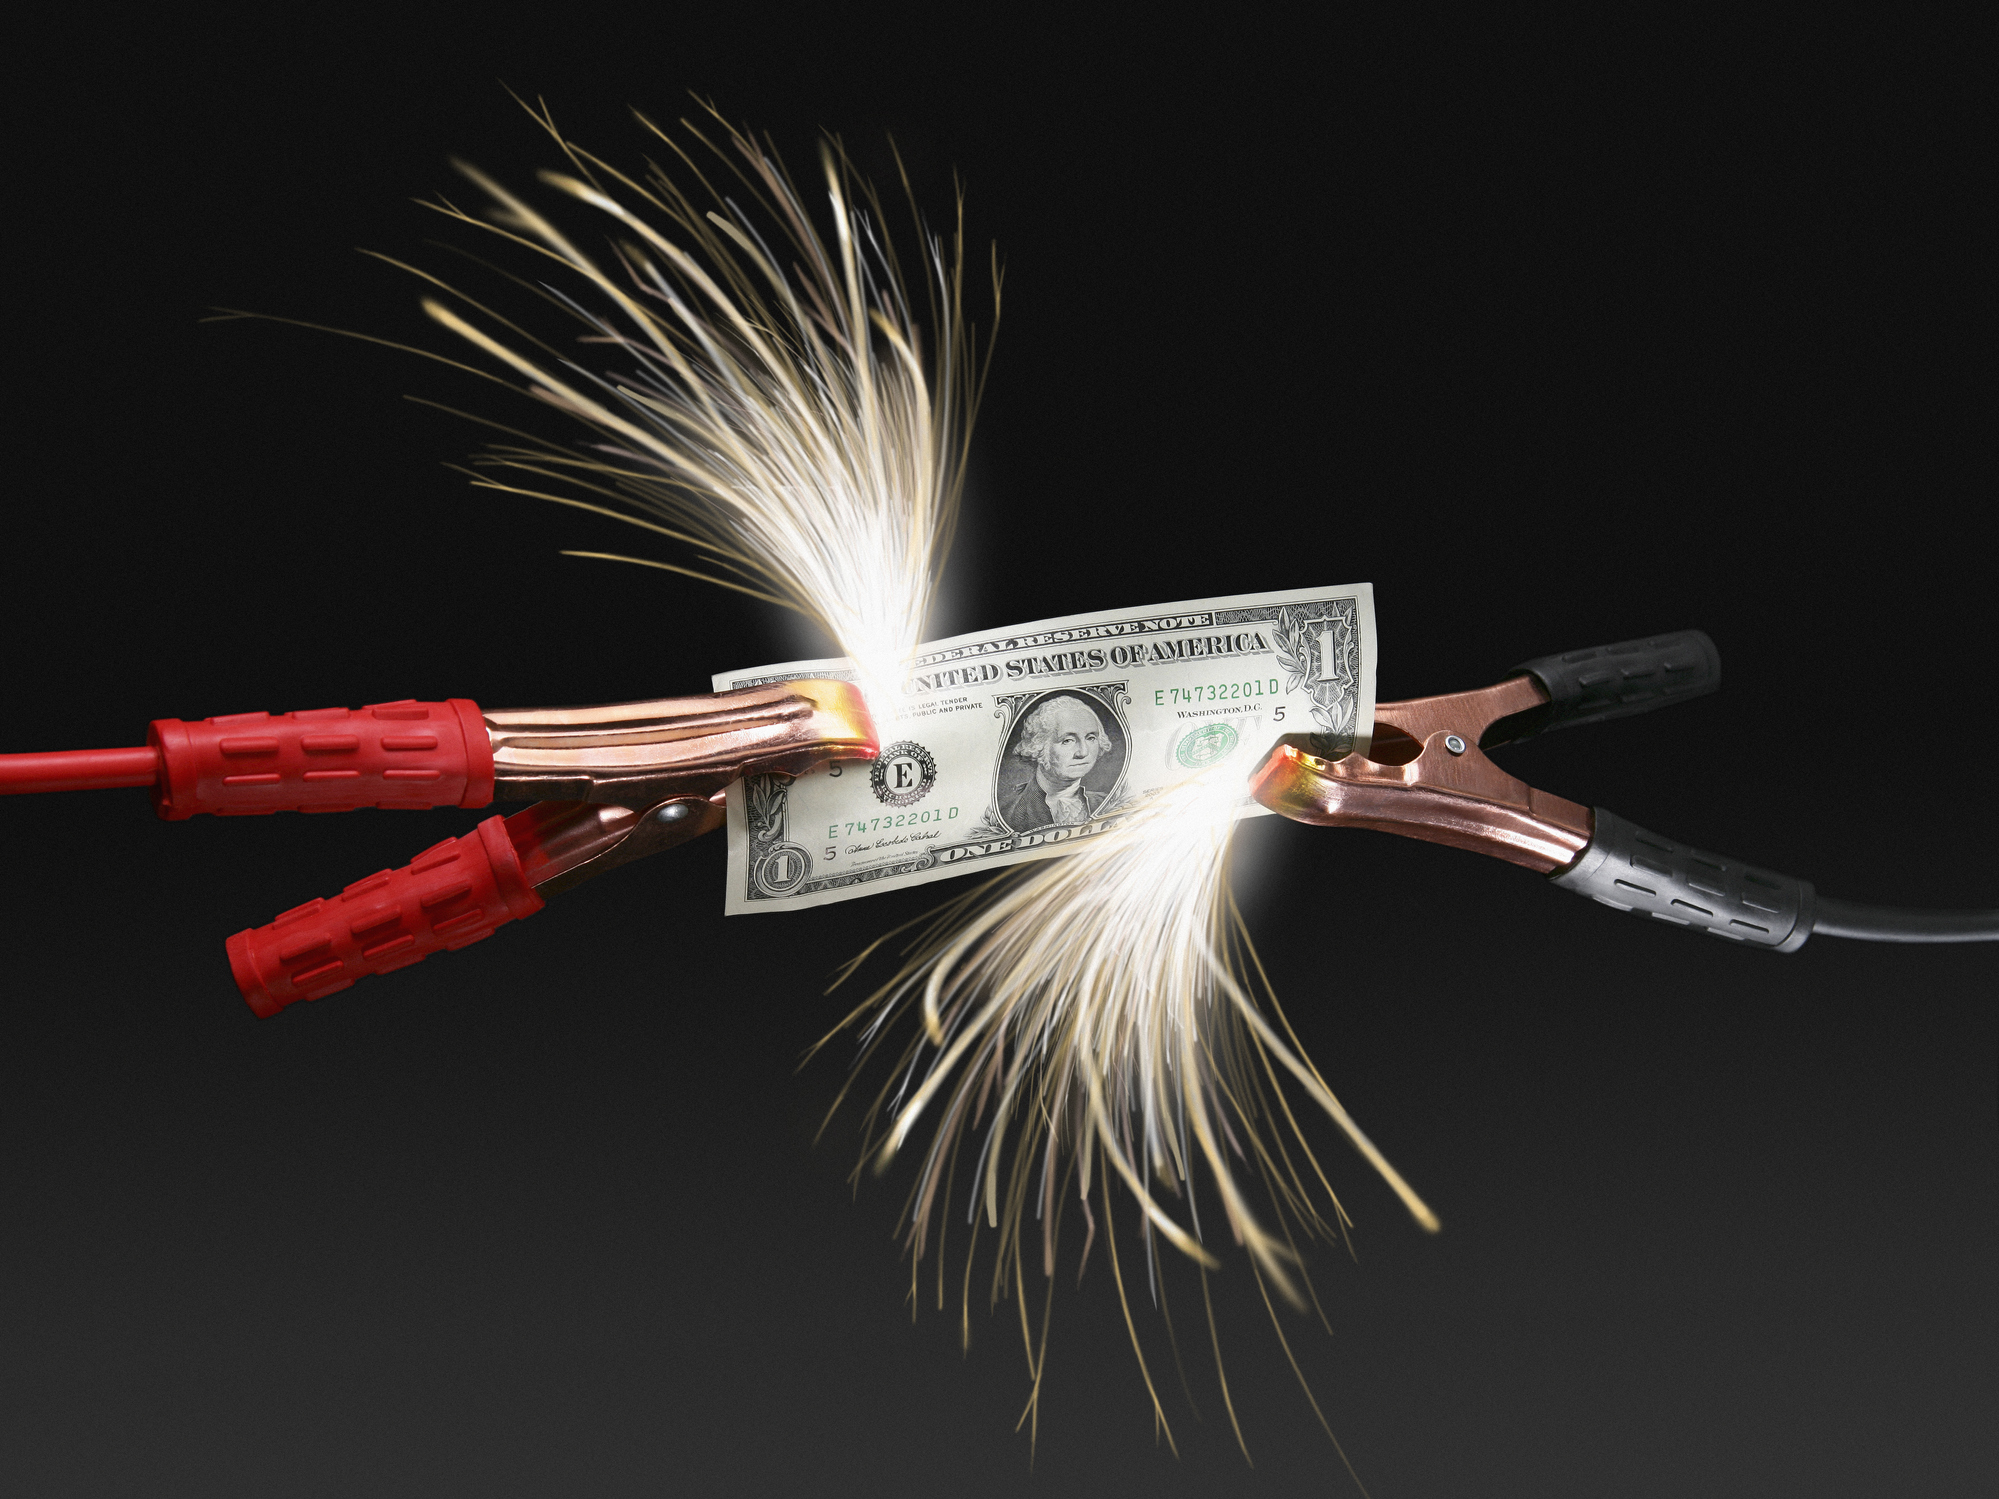 Sparks coming off US dollar bill attached to jumper cables